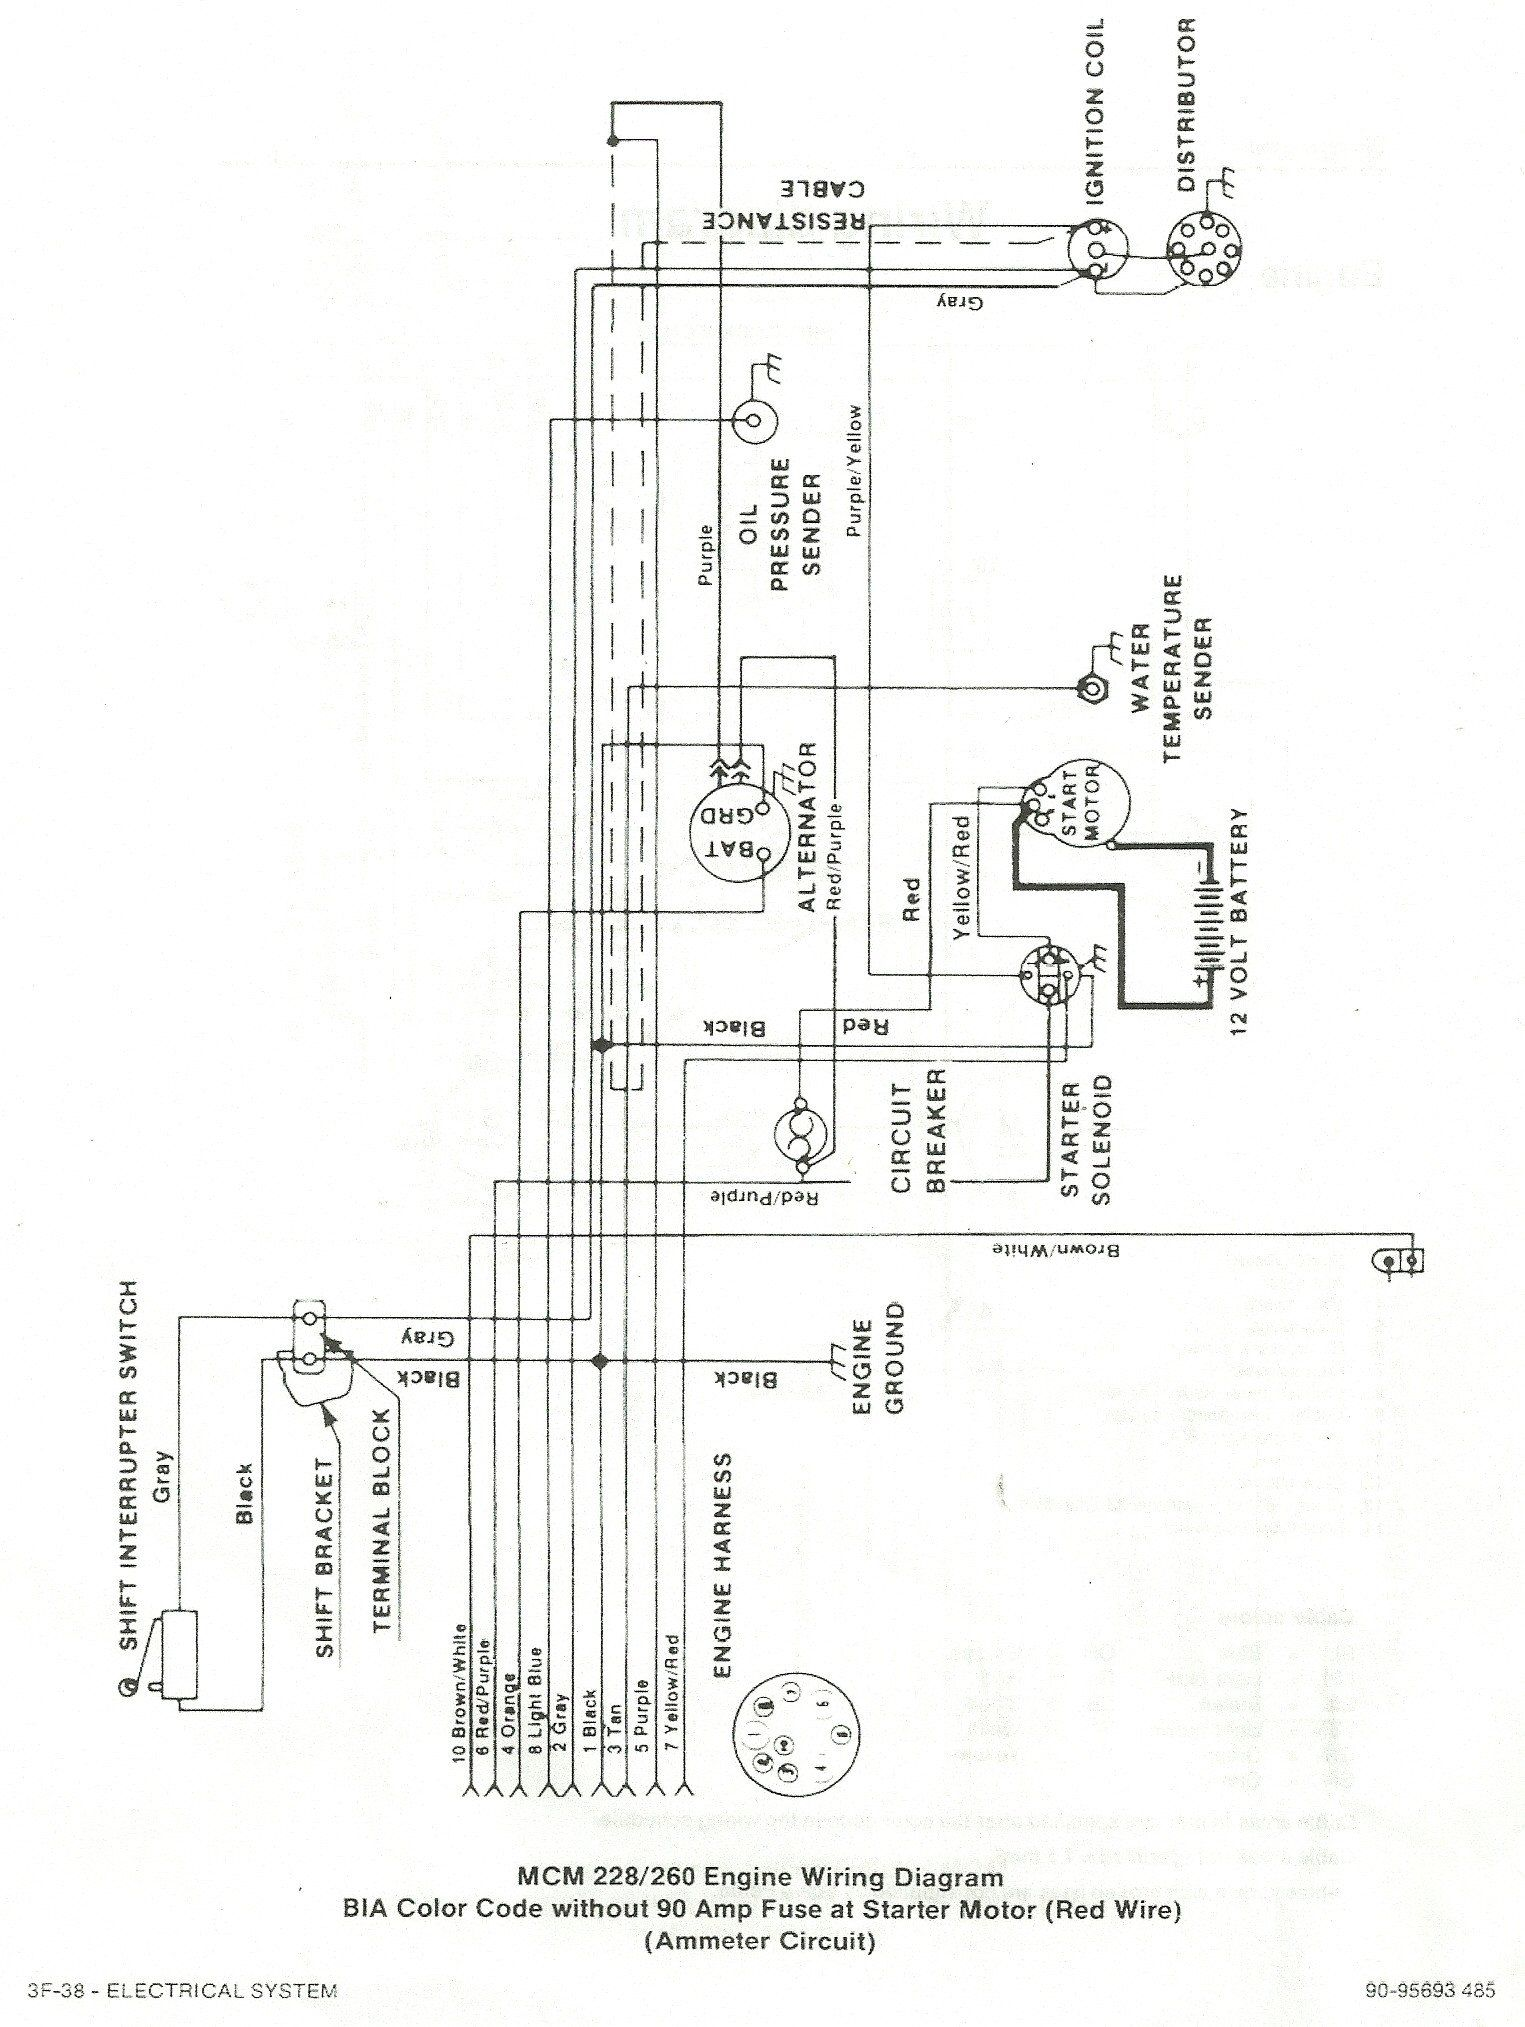 1996 4 3 Mercruiser Engine Distributer Wiring Diagram ... V Mercruiser Distributor Wiring Diagram on